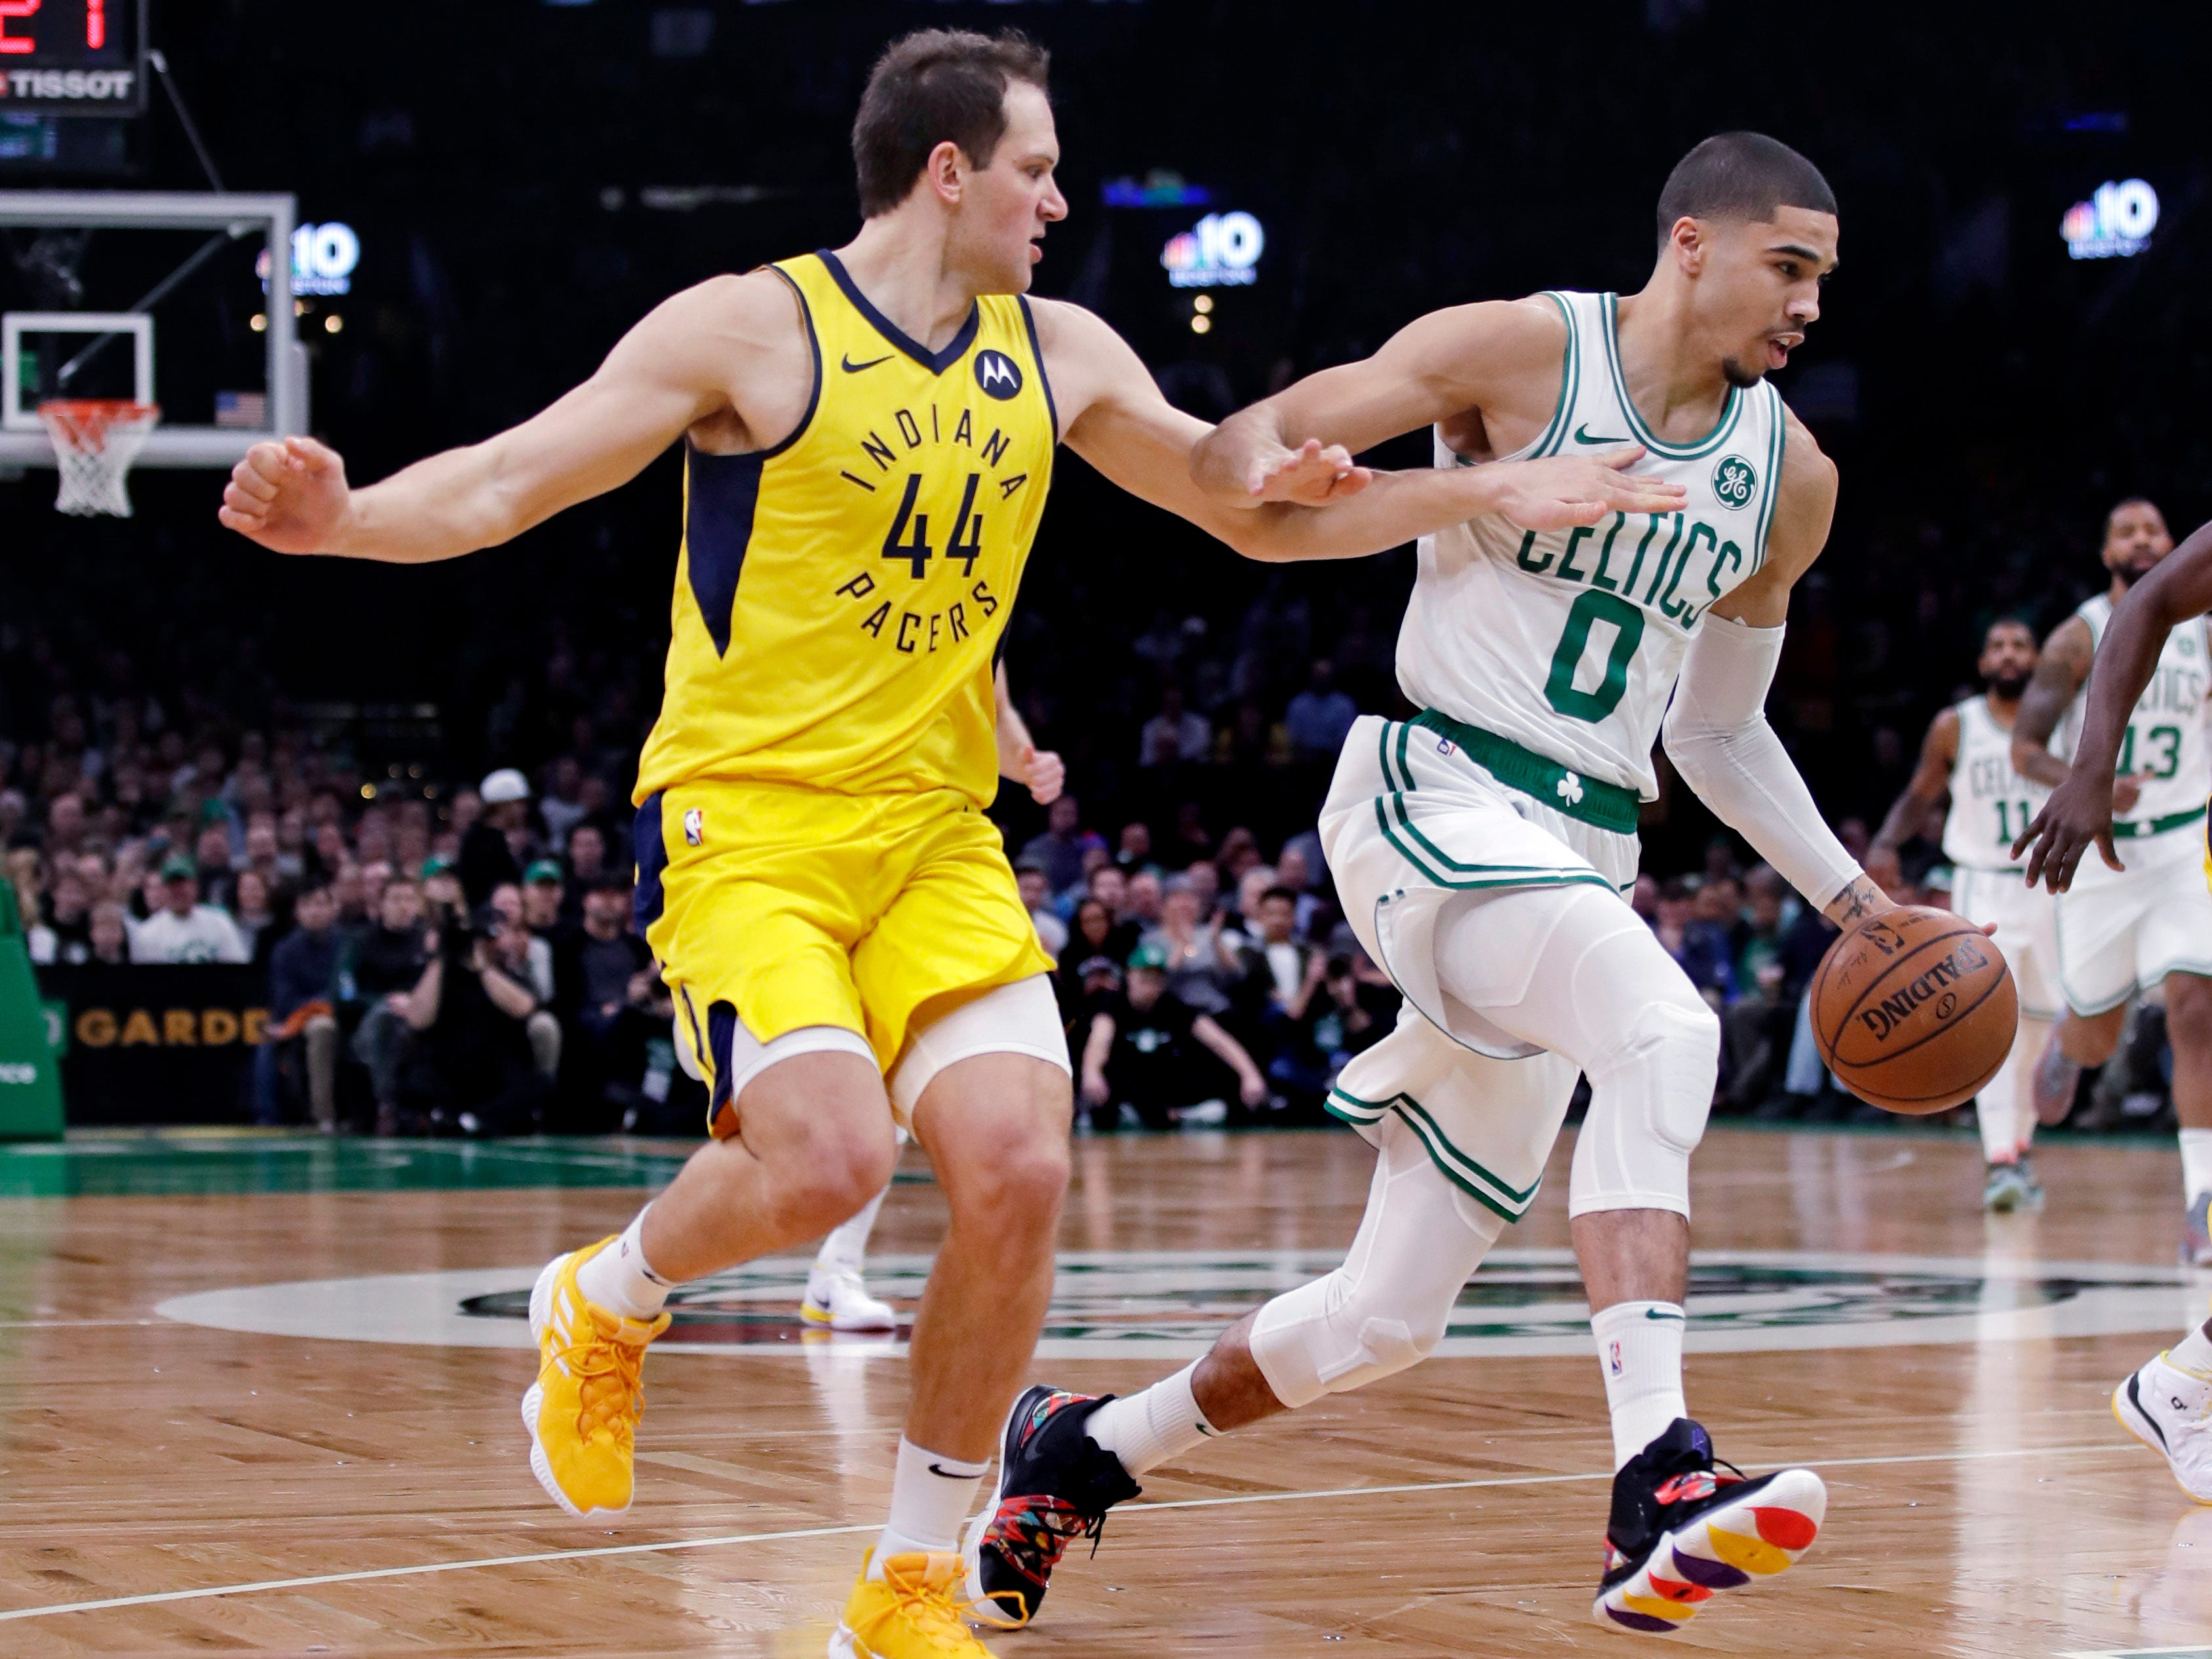 Boston Celtics forward Jayson Tatum (0) drives to the basket past Indiana Pacers forward Bojan Bogdanovic (44) during the first quarter of an NBA basketball game in Boston, Wednesday, Jan. 9, 2019.